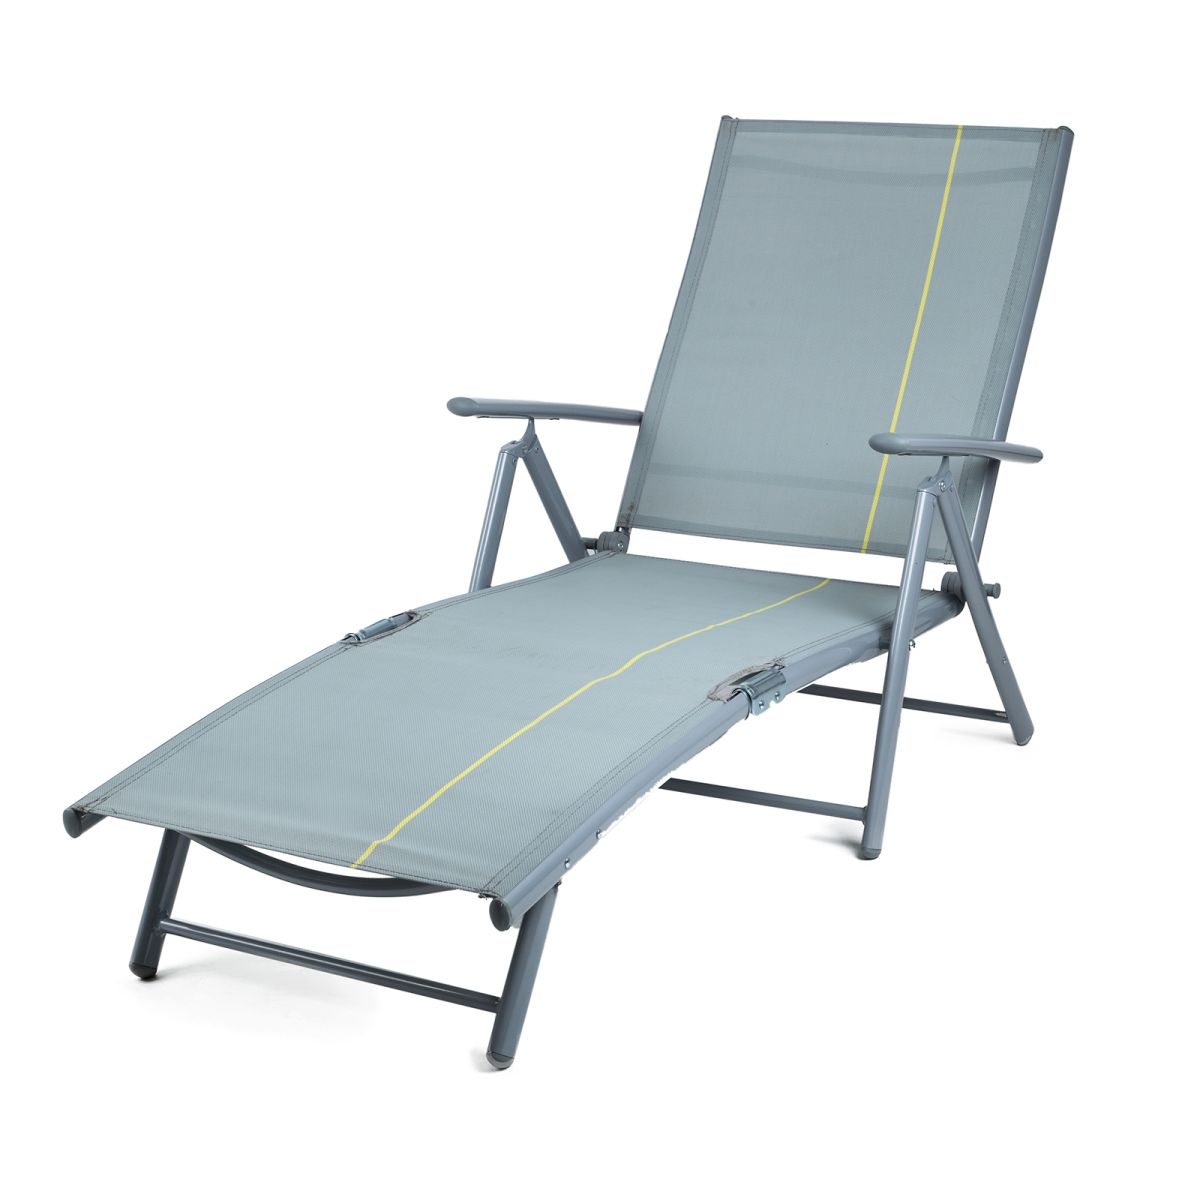 Garden sun deck chair chaise lounge relax lounger for Beach lounge chaise